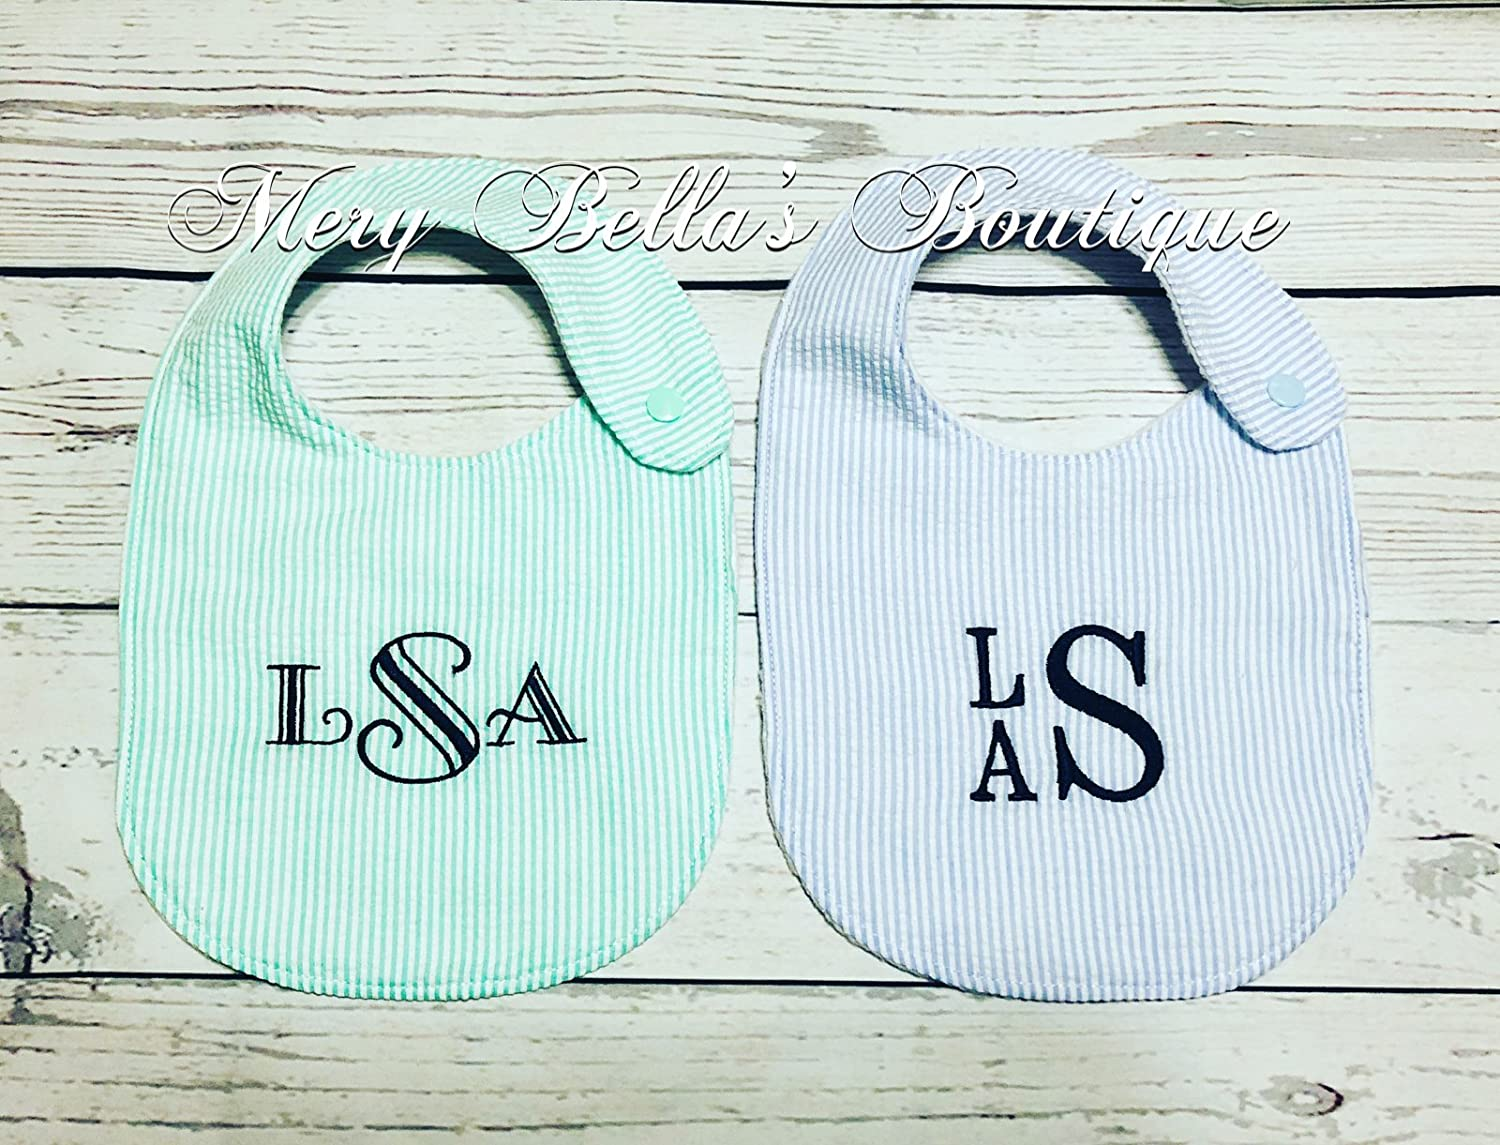 Monogrammed Baby bib, Personalized Seersucker bib,baby shower gift, customizable baby set,embroidered bib,baby boy gift, baby girl gift,monogrammed bib